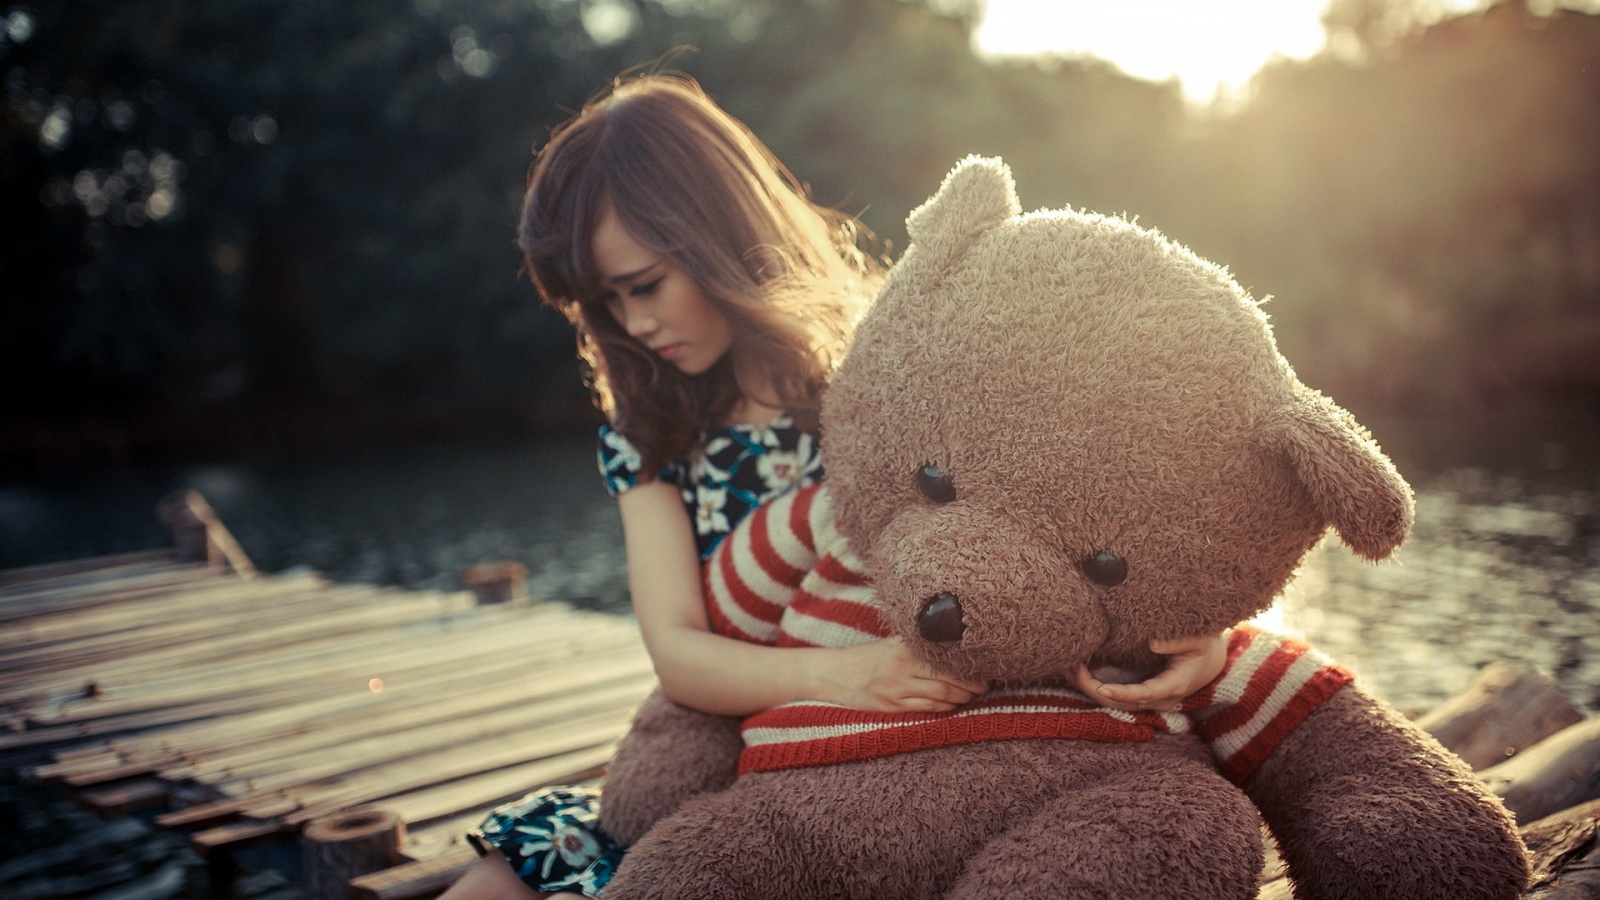 Sad Alone Girl Hd Wallpaper Download Sad Girl Hug Teddy Bear Wallpapers 1600x900 420383